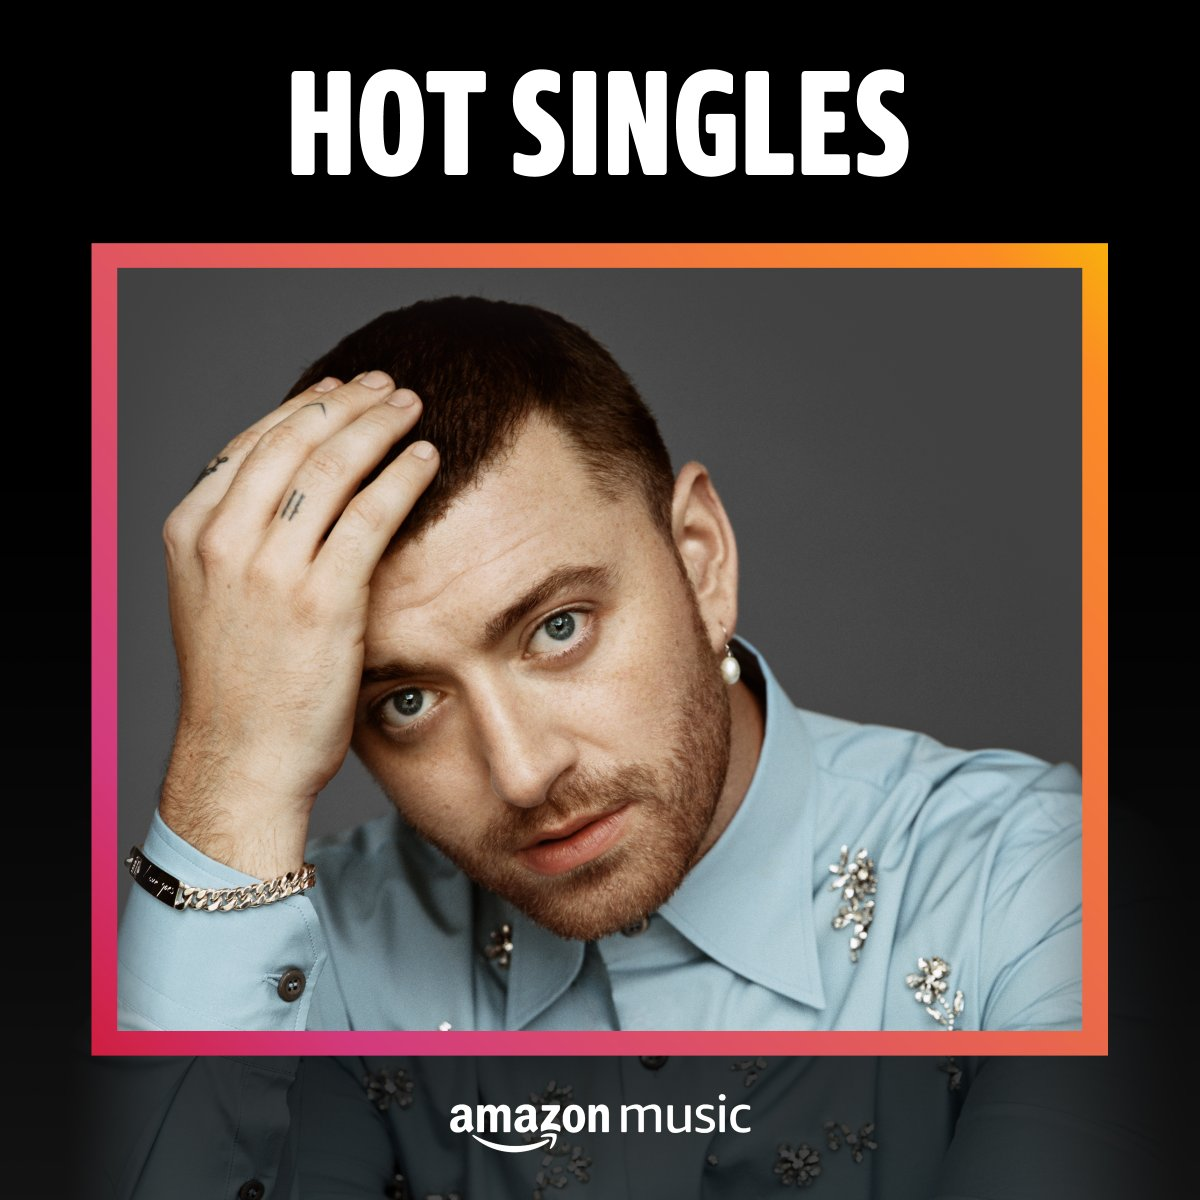 My Oasis on Hot Singles @amazonmusic amzn.to/31eq6VF